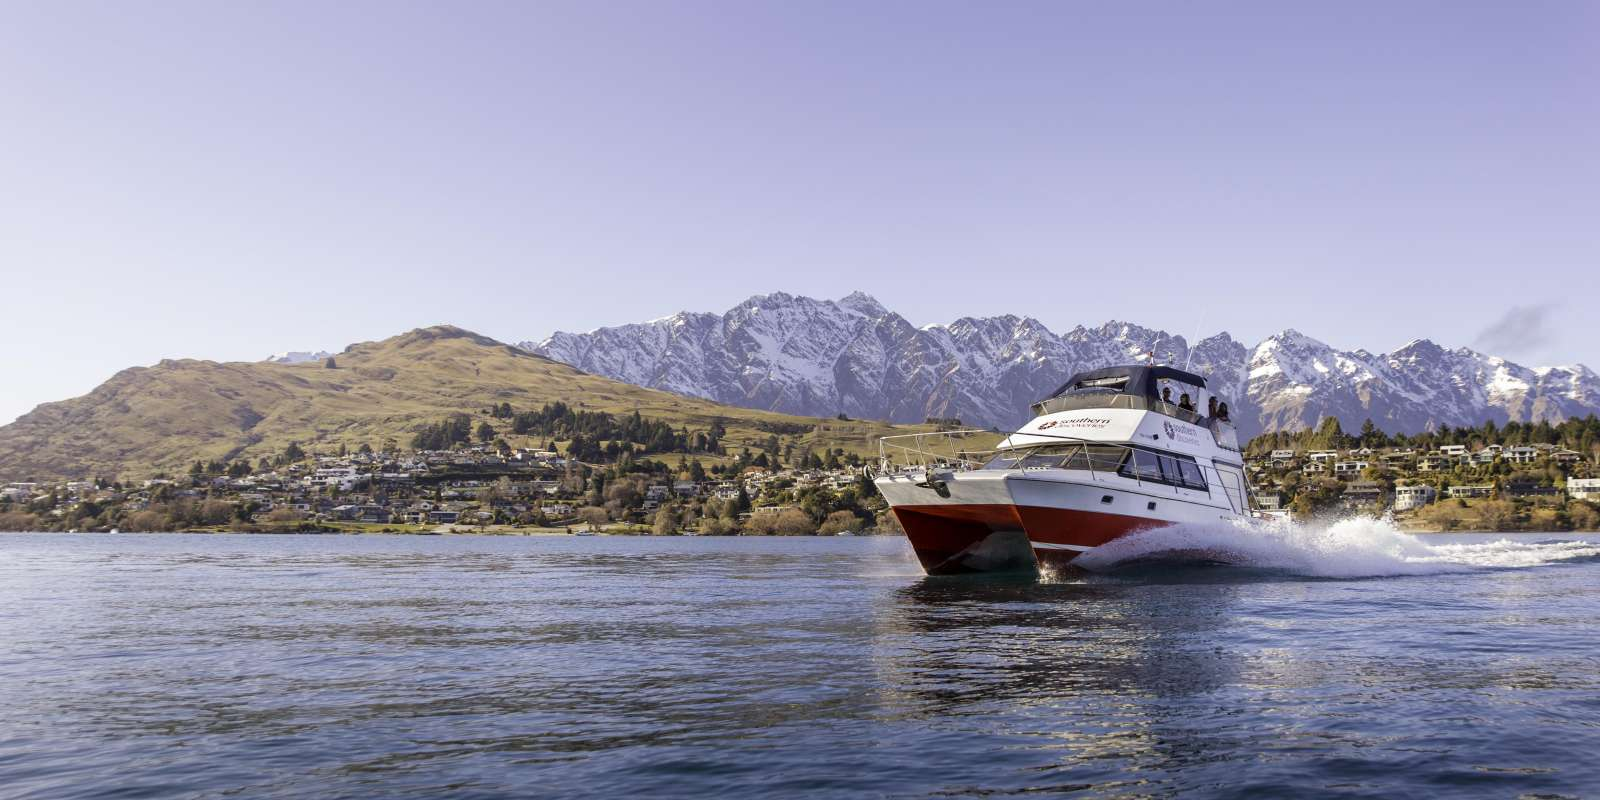 Cruise on Lake Wakatipu with Southern Discoveries